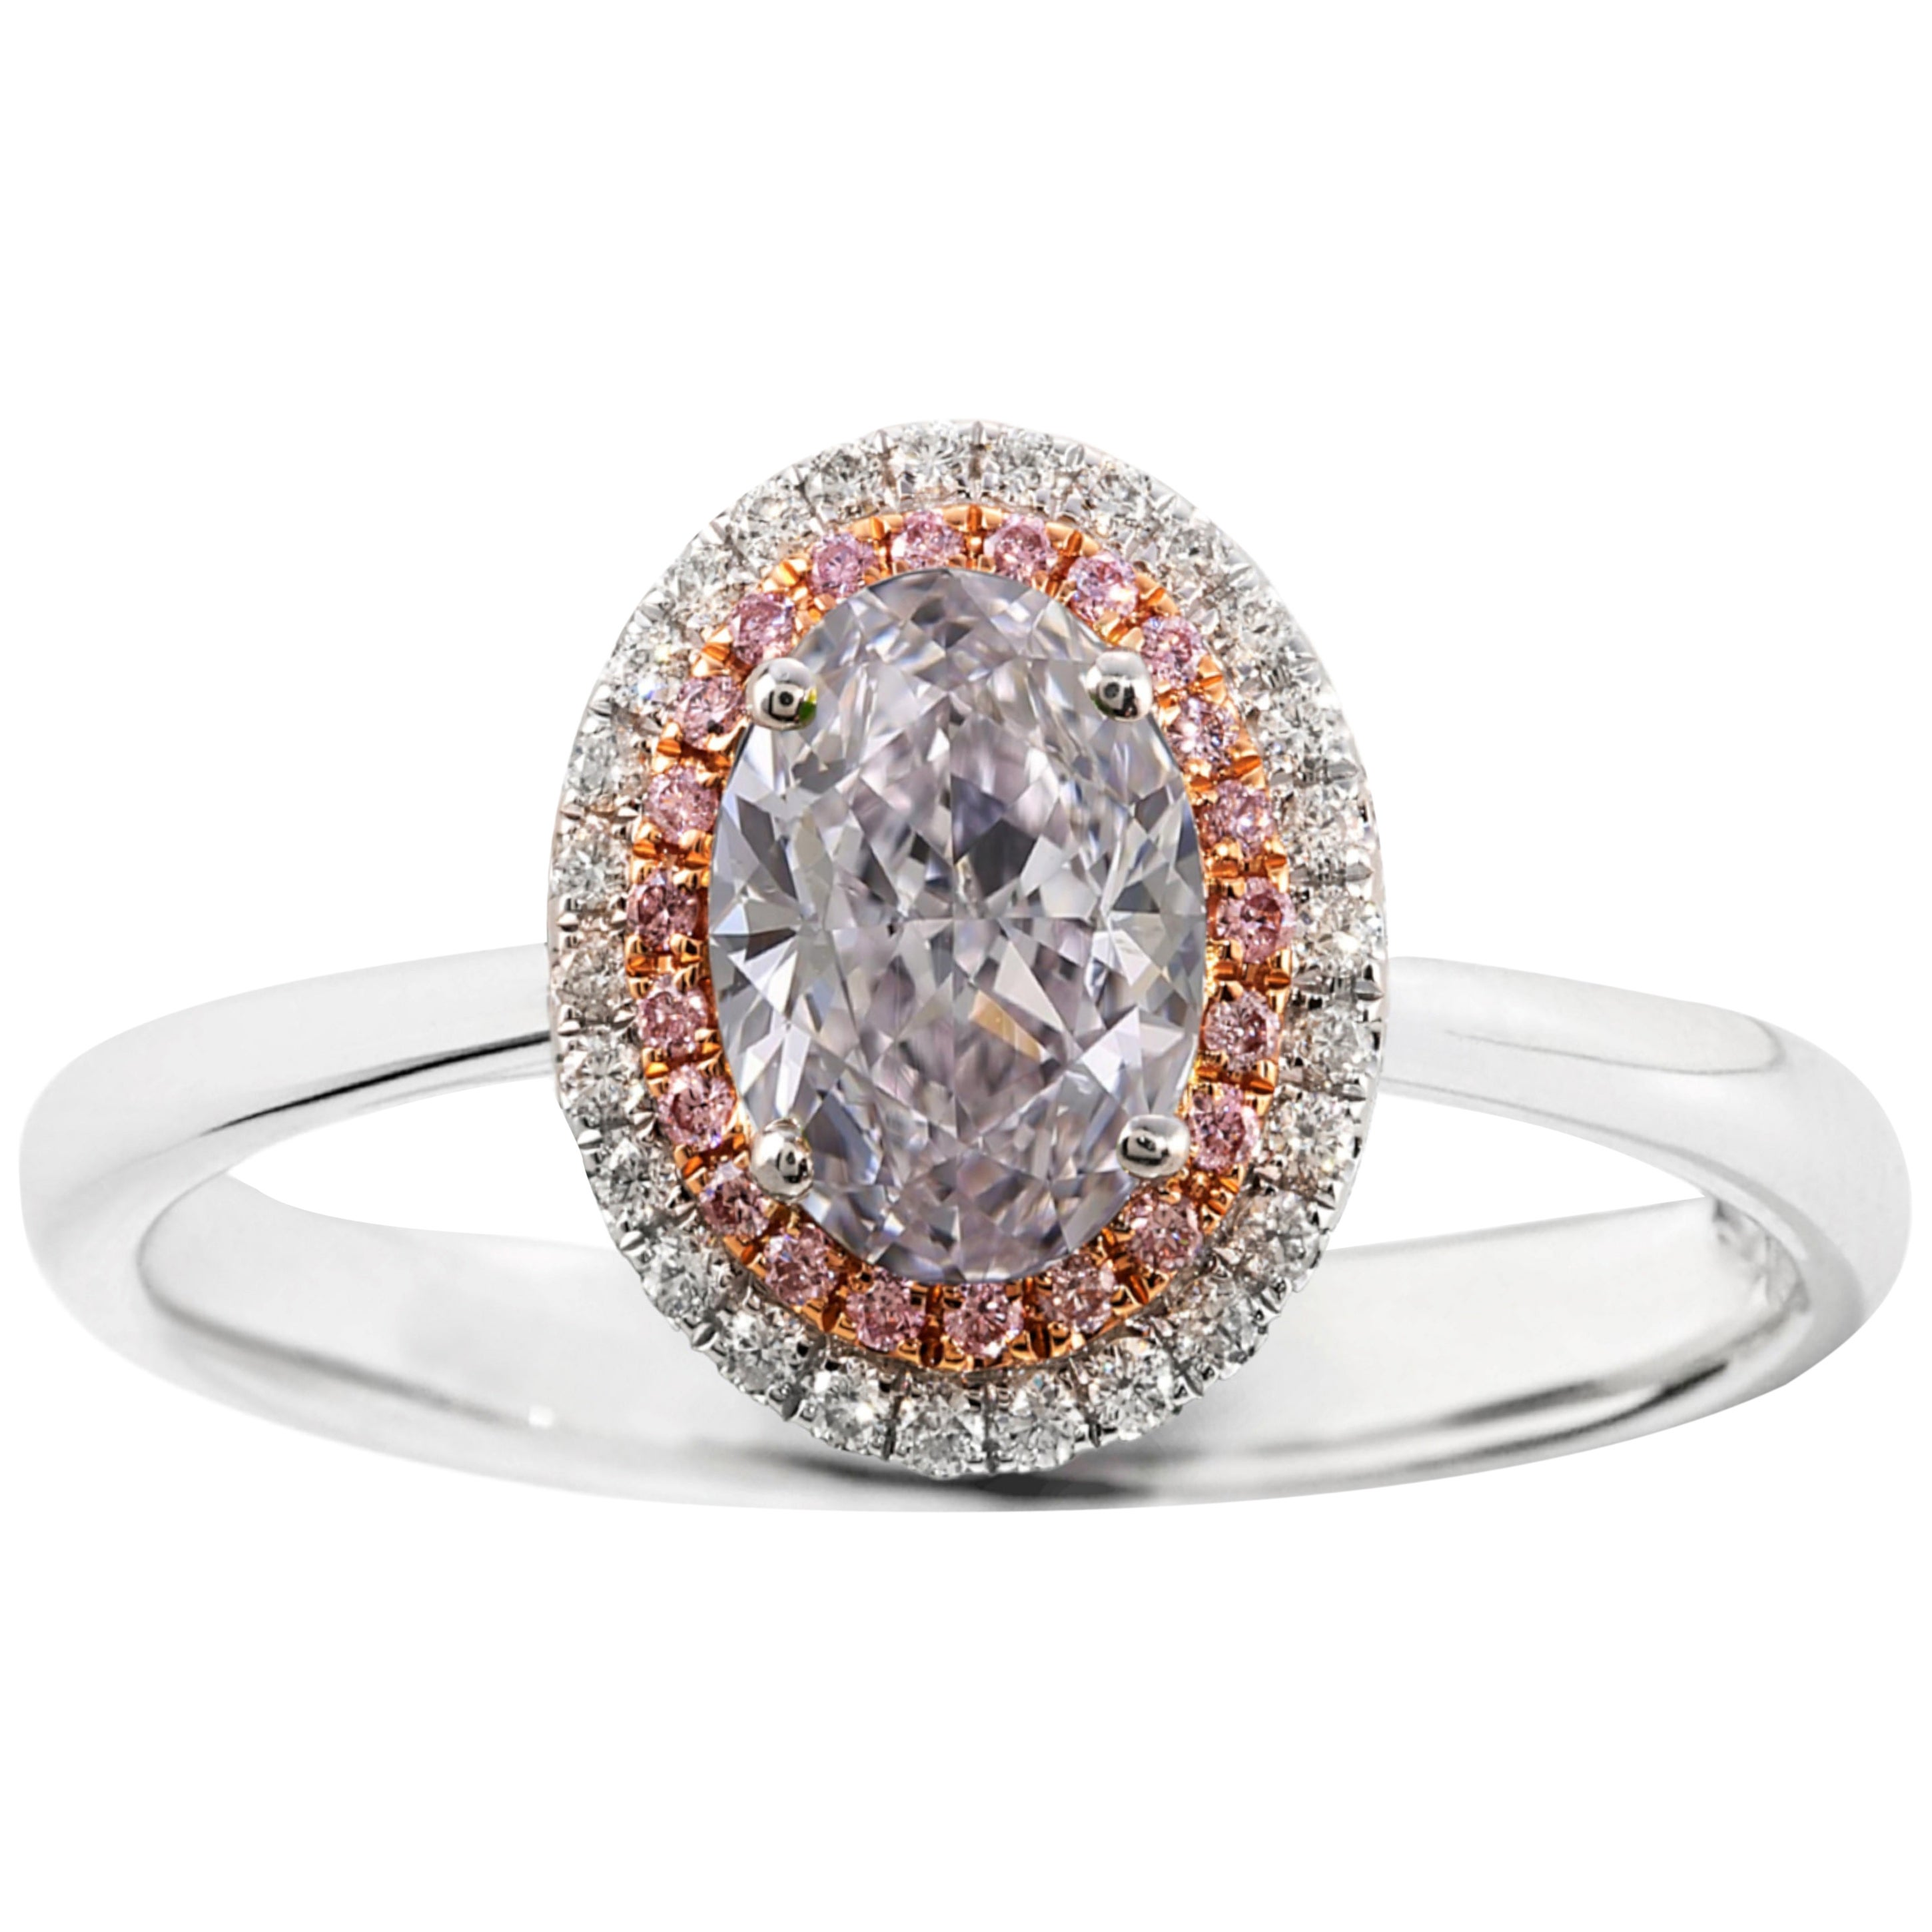 GIA Certified 1.75 Carat Light Pink Oval Diamond Double Halo Platinum Ring